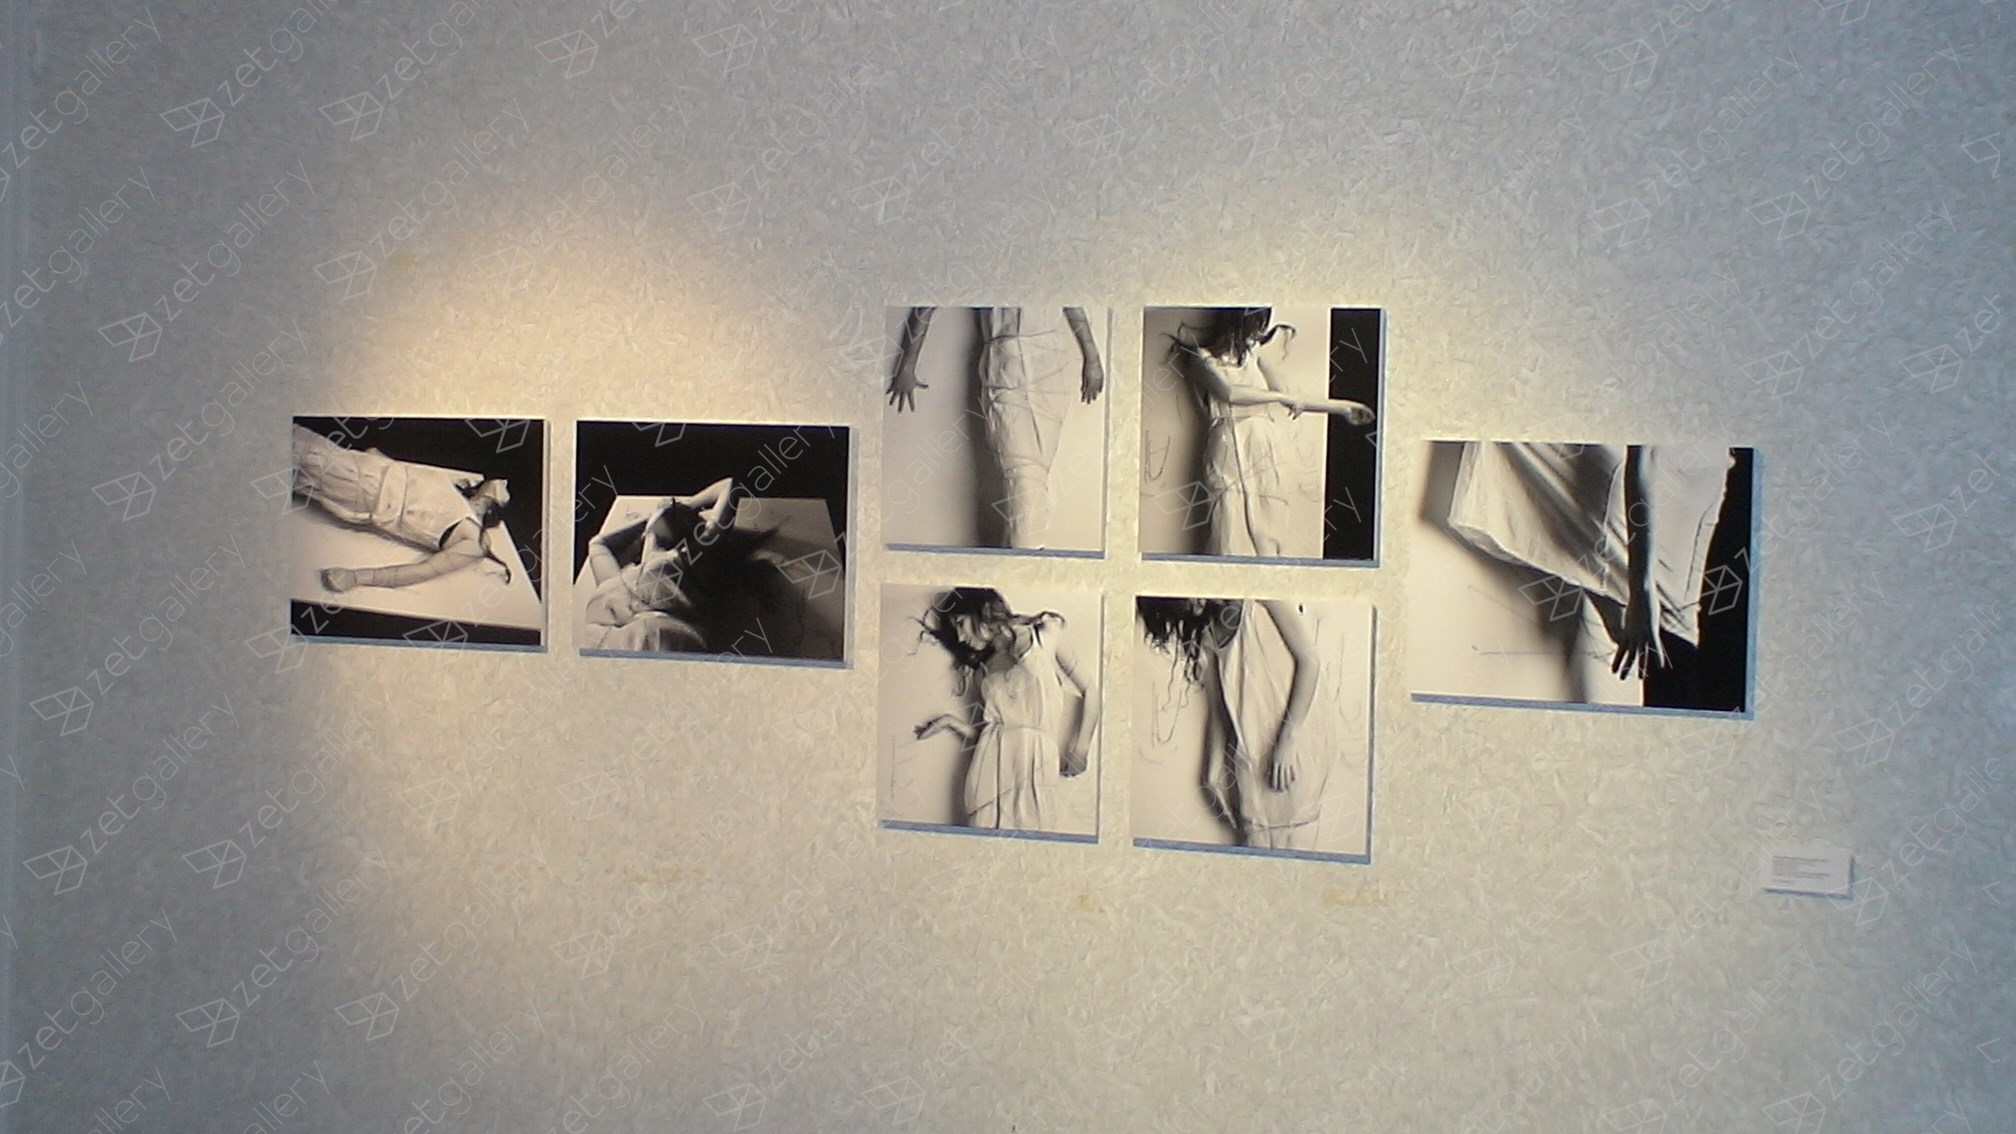 """Pintura?Escultura?Performance?"" #1, original Human Figure Analog Photography by Rebecca Moradalizadeh"